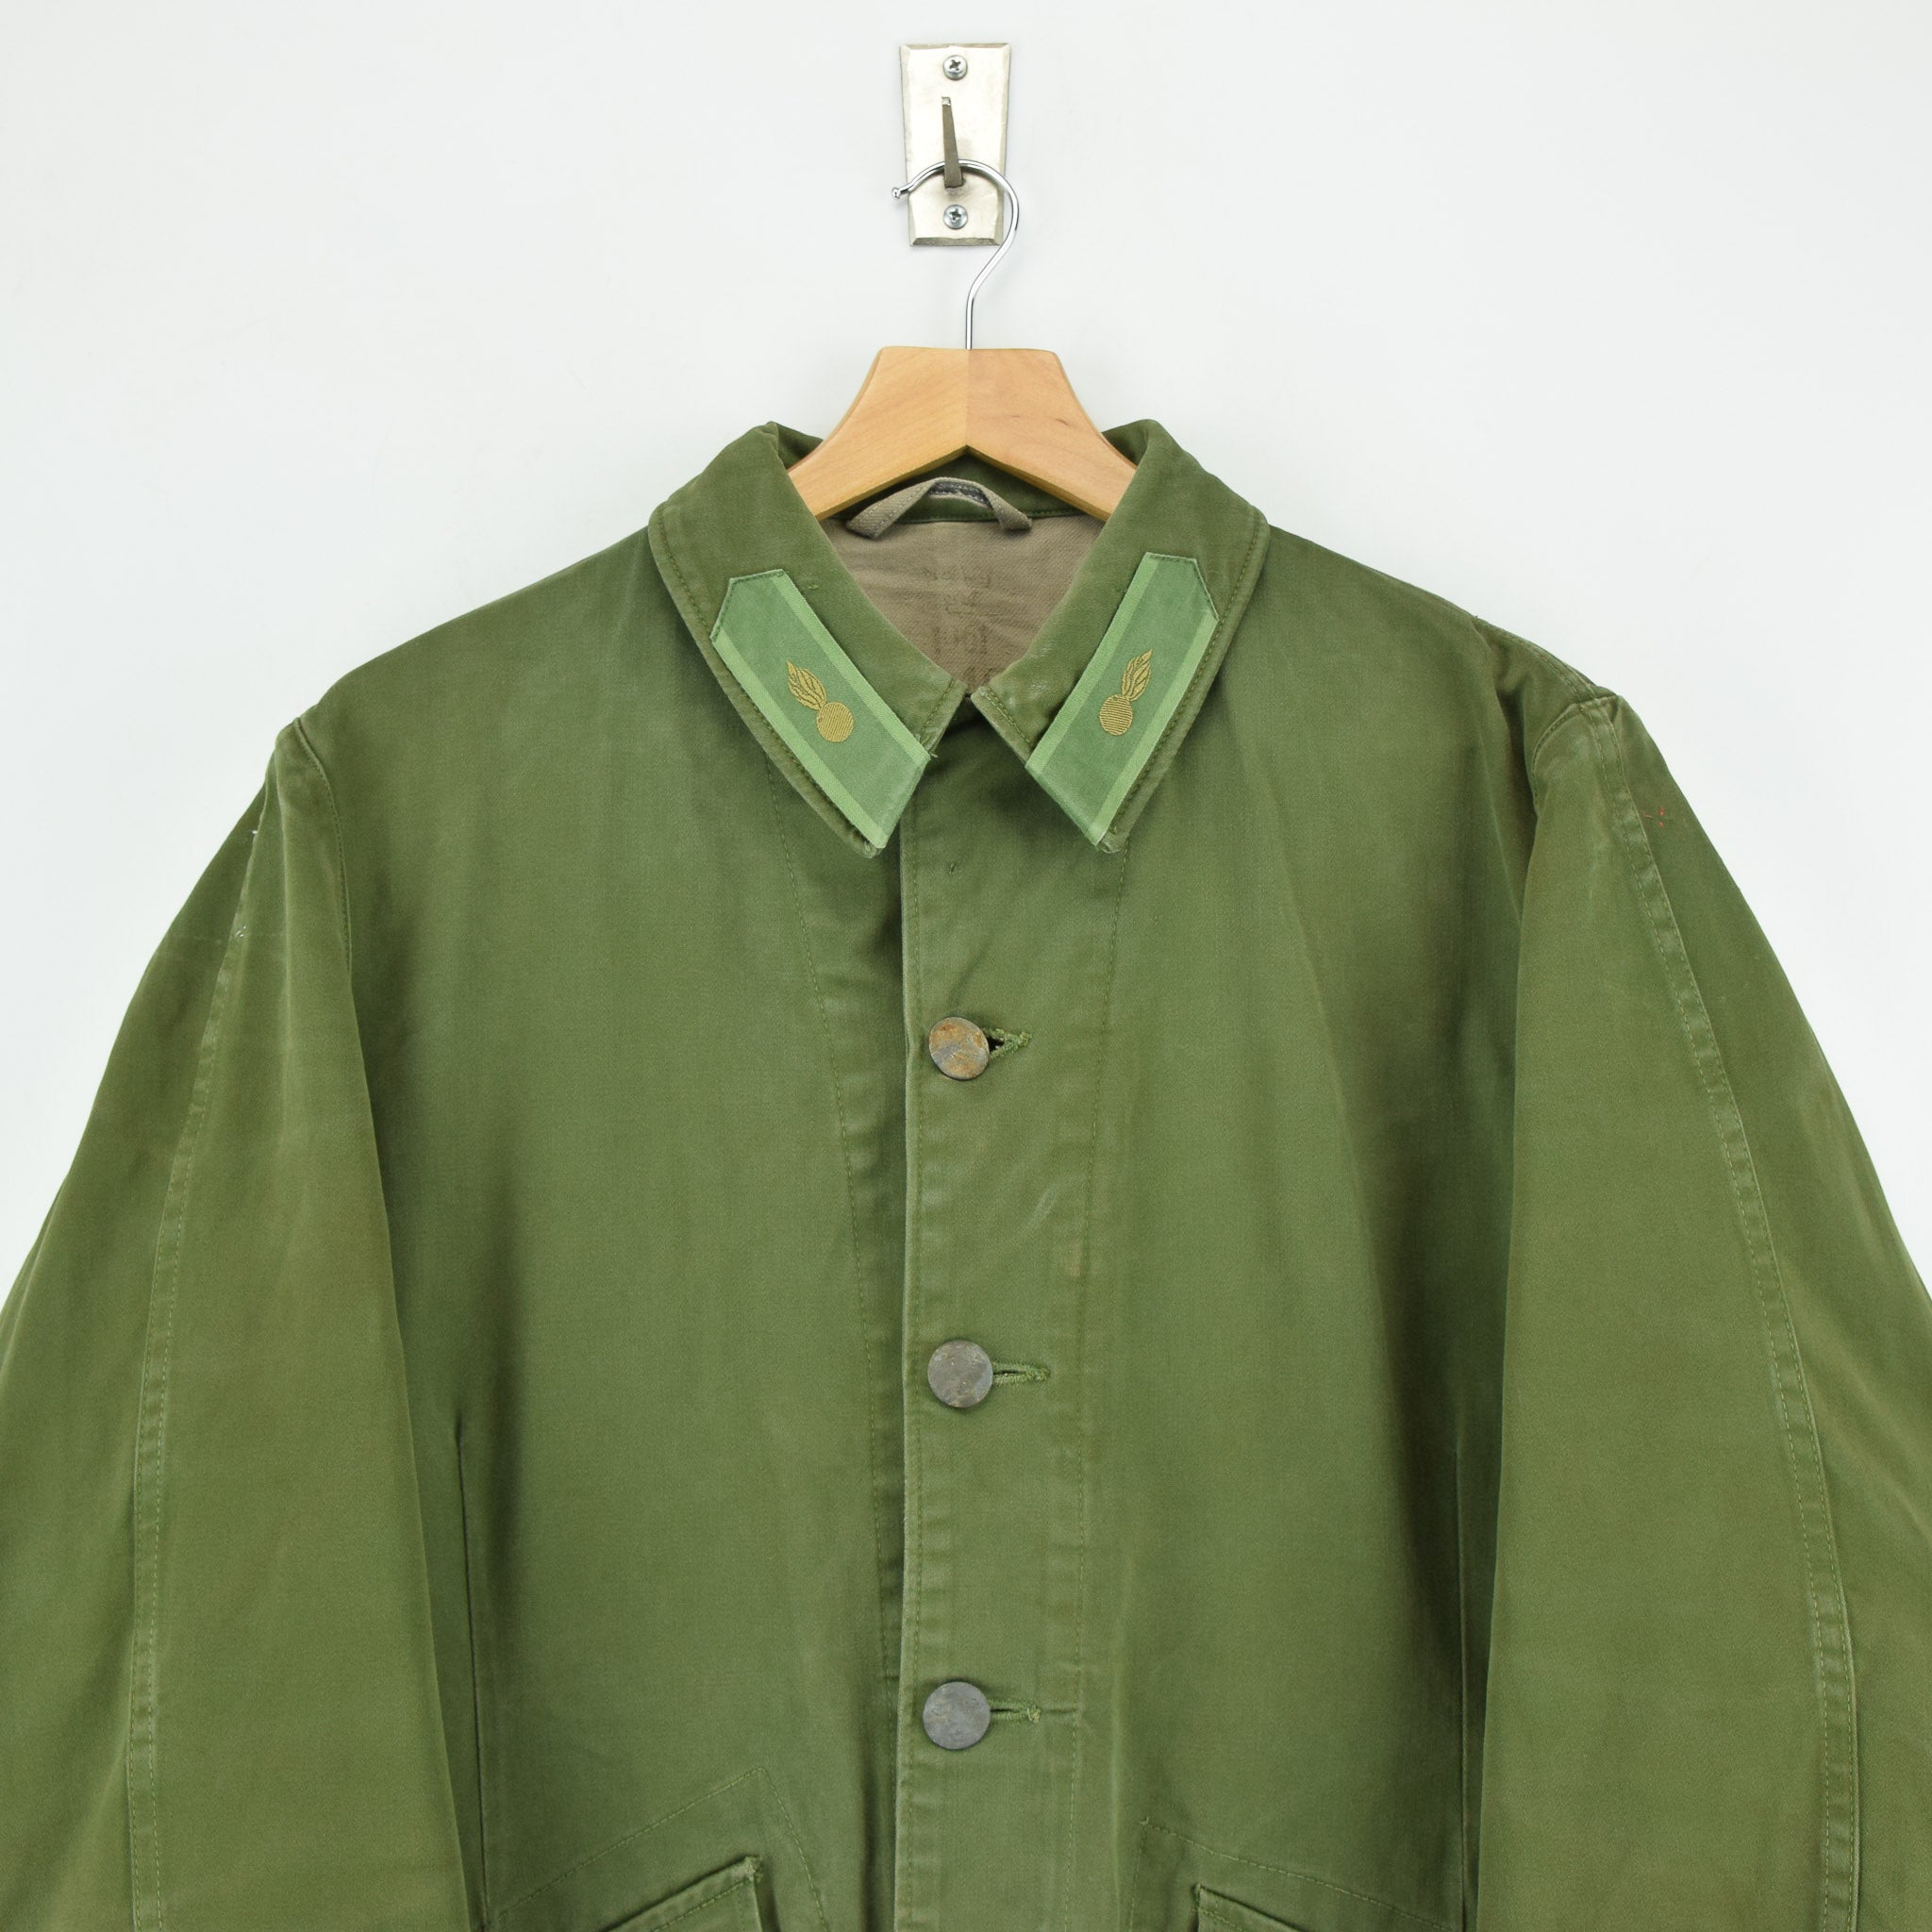 Vintage Well Worn Swedish M59 Field Military Green Worker Style Jacket M / L chest